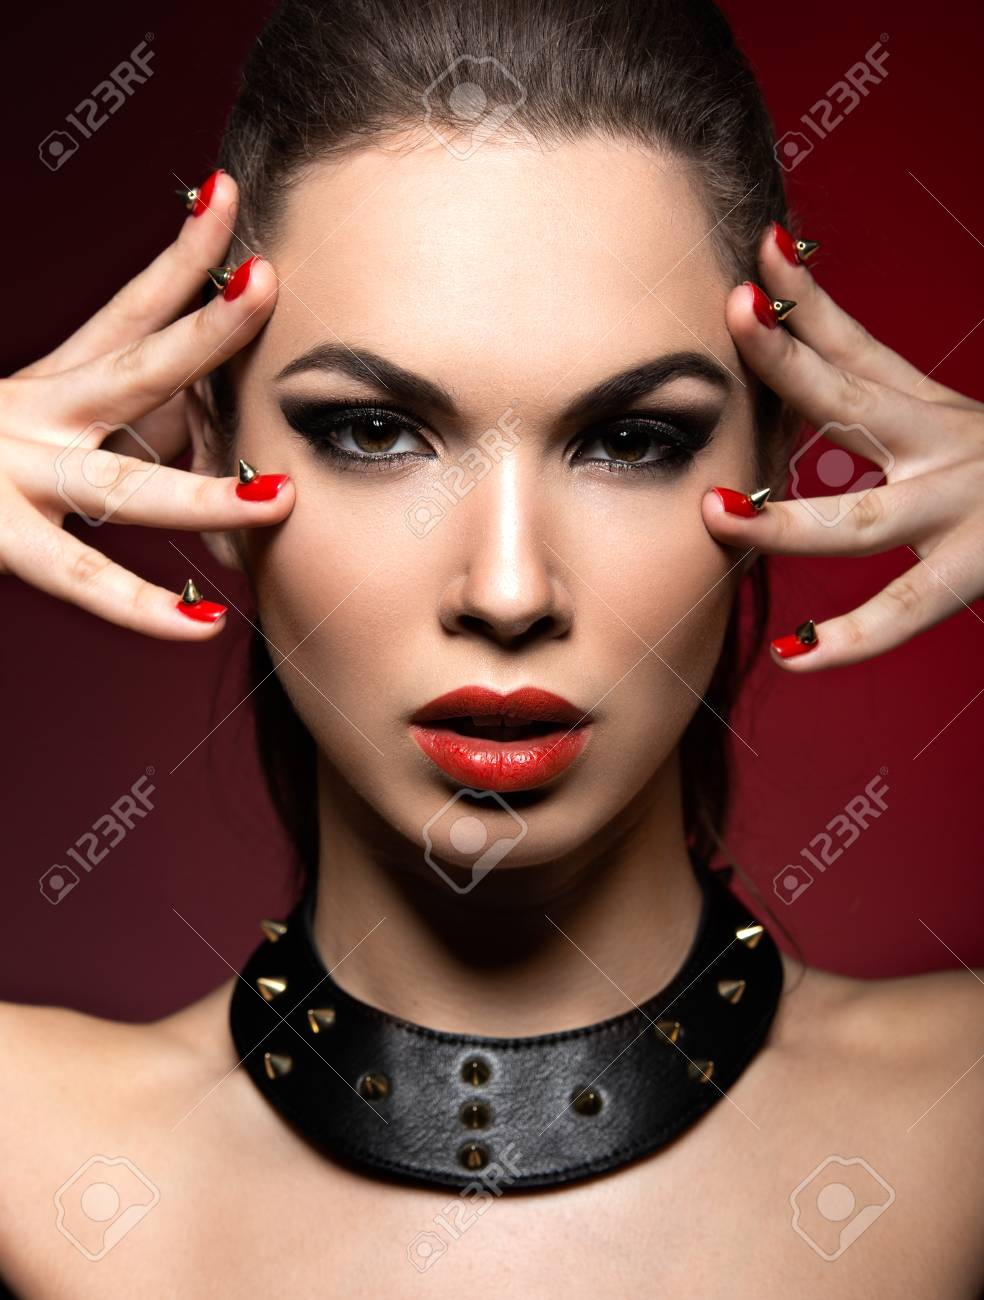 Beautiful Woman In Gothic Style With Evening Makeup And Red Nails Thorns Picture Taken